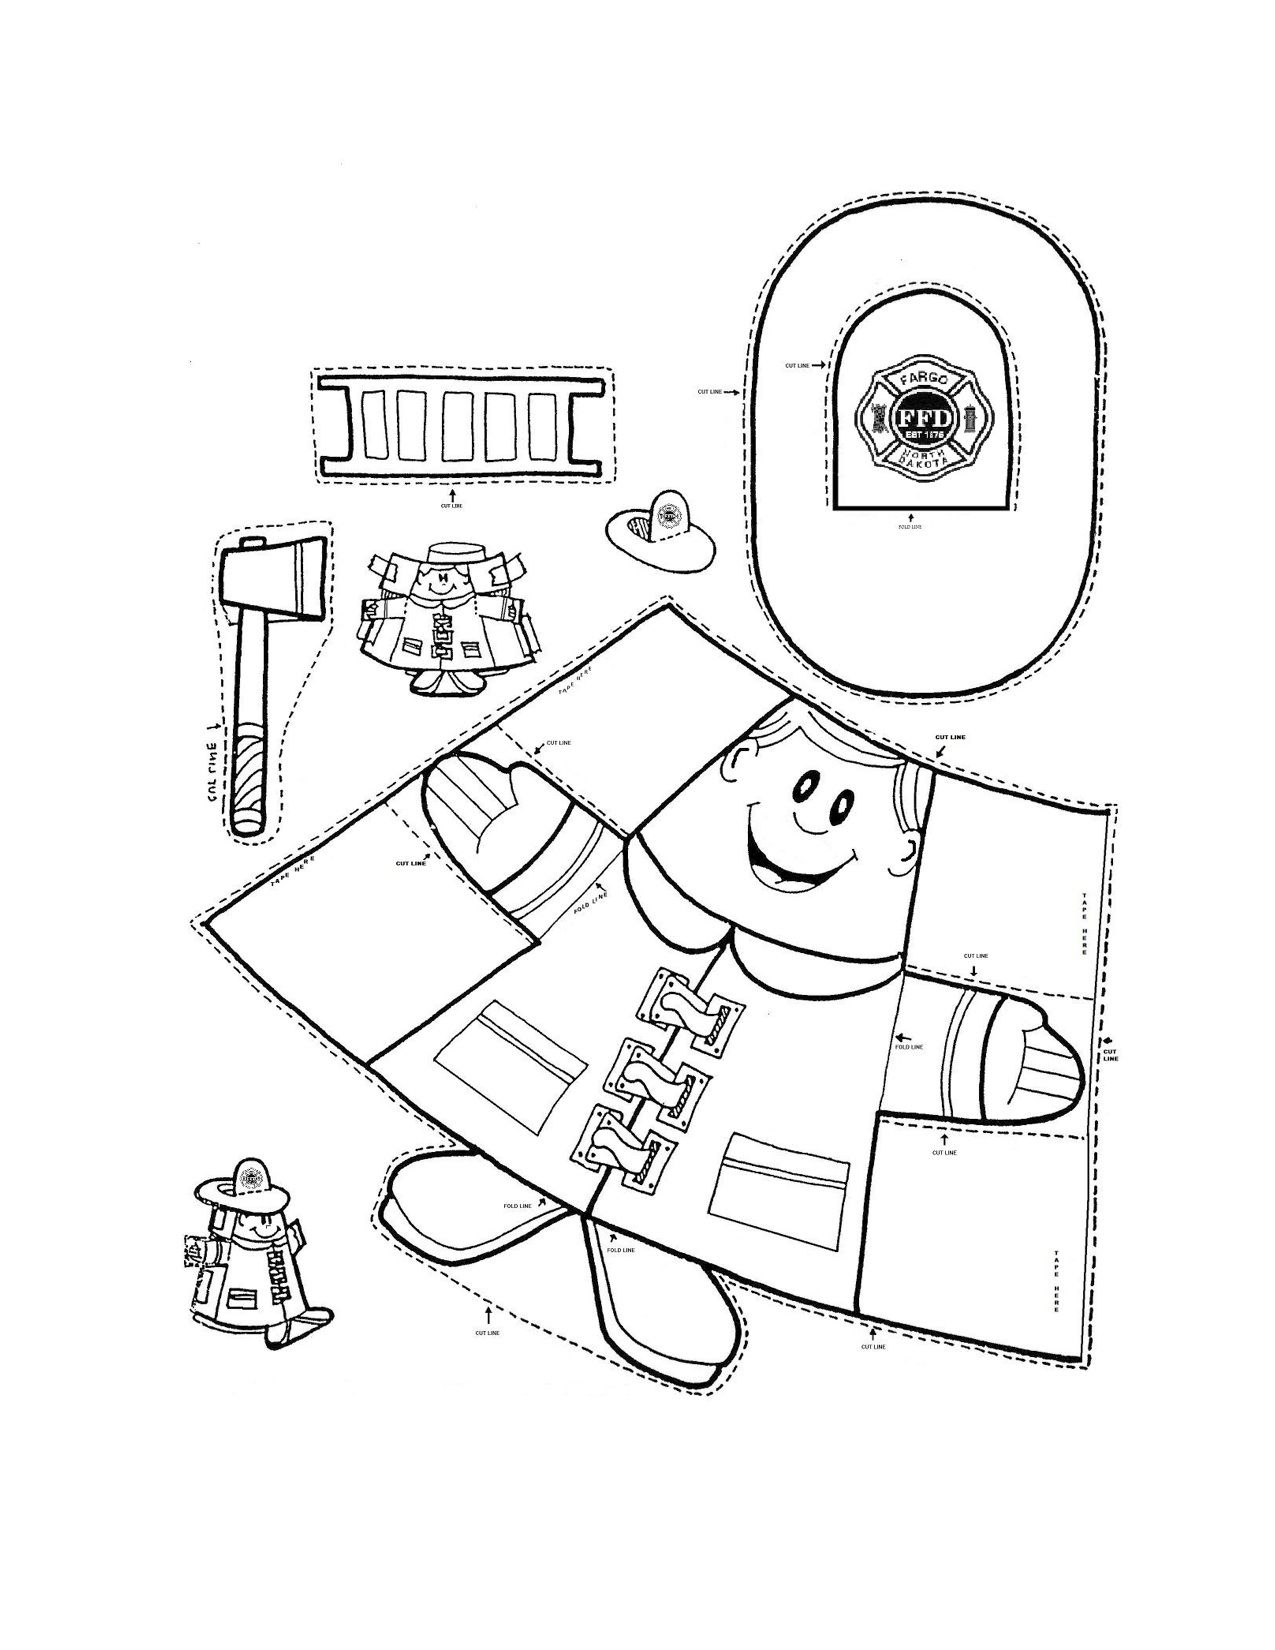 Fire Truck Maze Worksheet School Presc